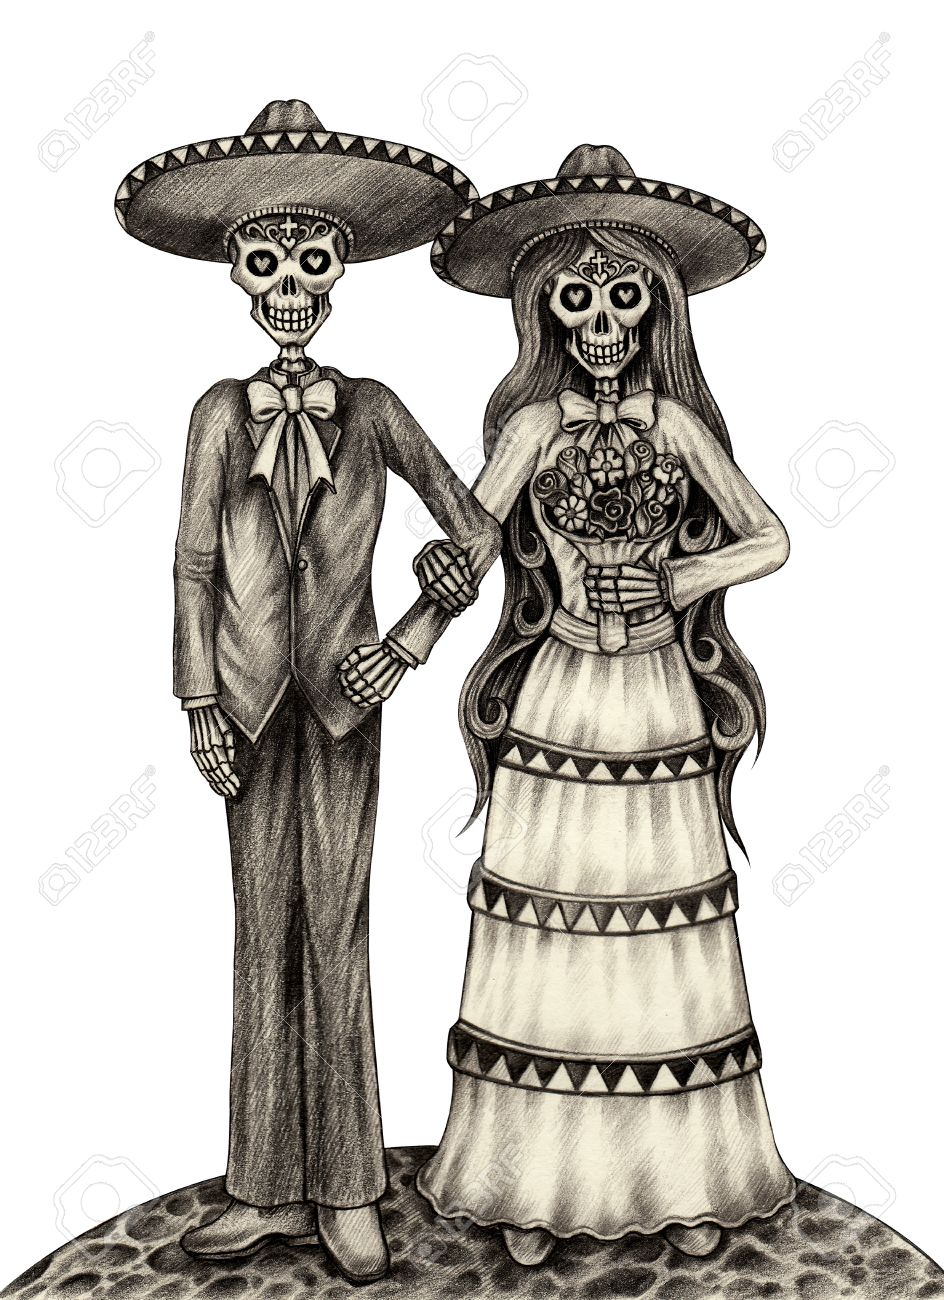 944x1300 Skull Art Wedding Day Of The Dead Festival.hand Pencil Drawing